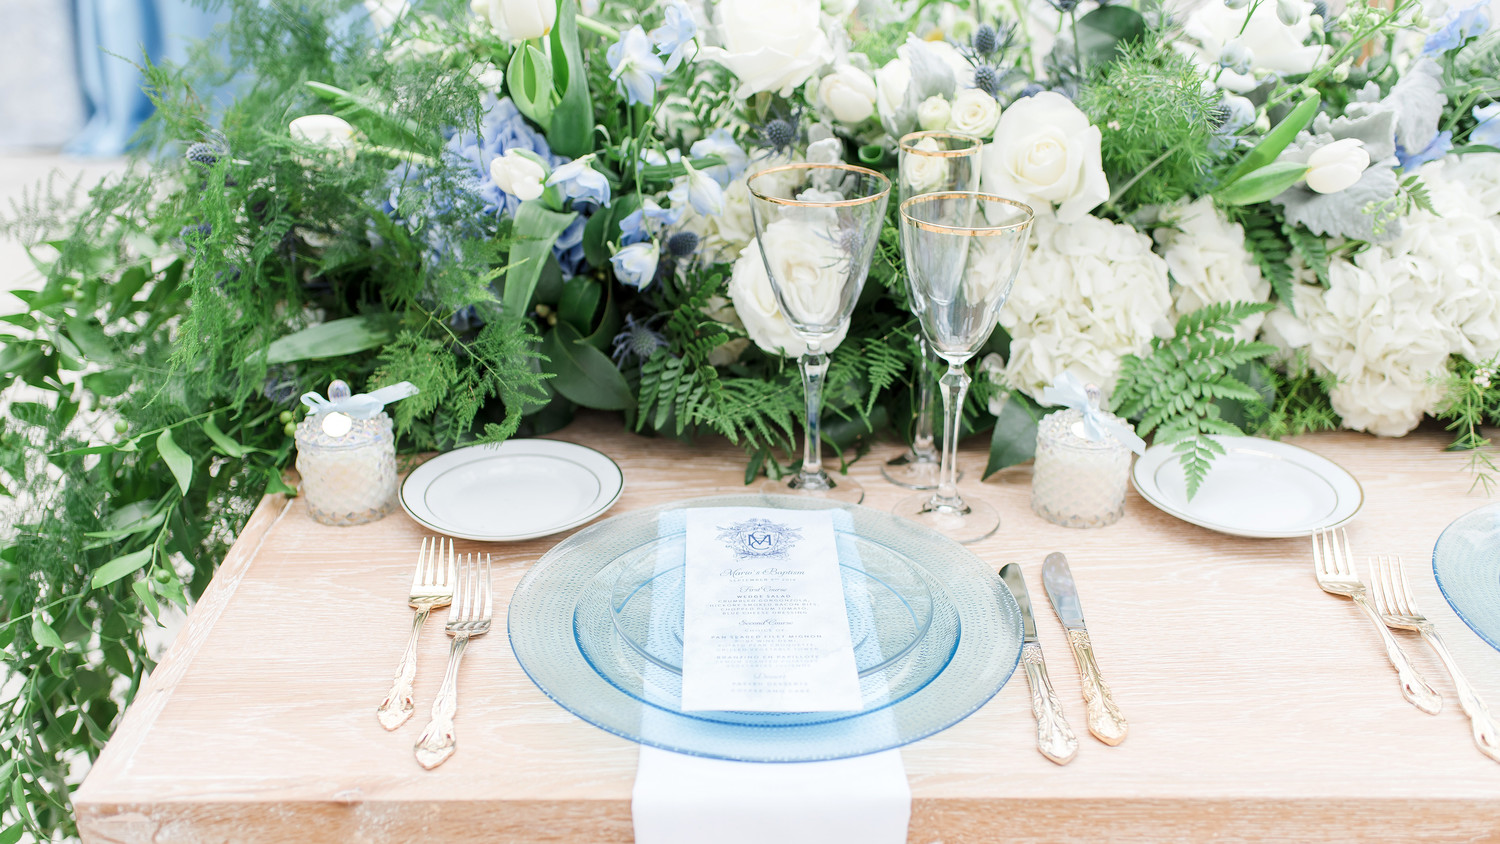 charitable baptism celebration table place setting with flowers